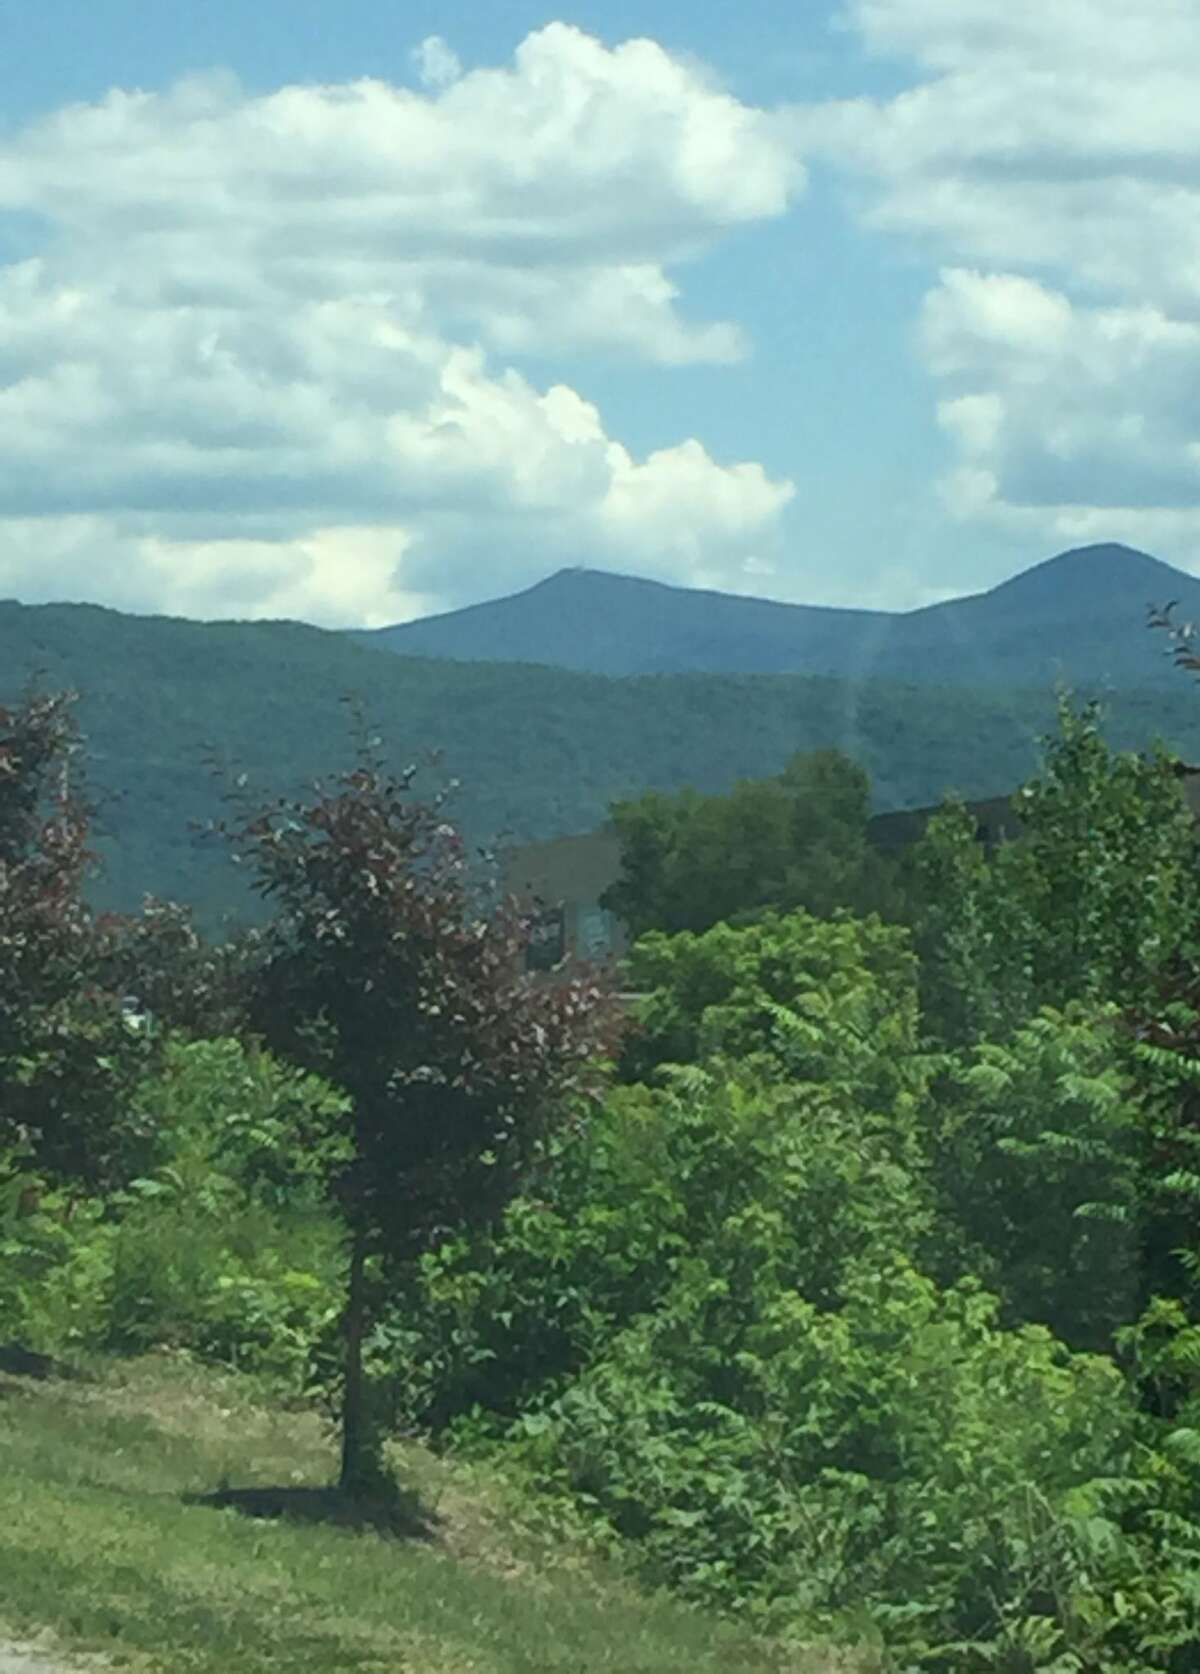 A view of the scenery near Rutland on the way to Waterbury, VT.